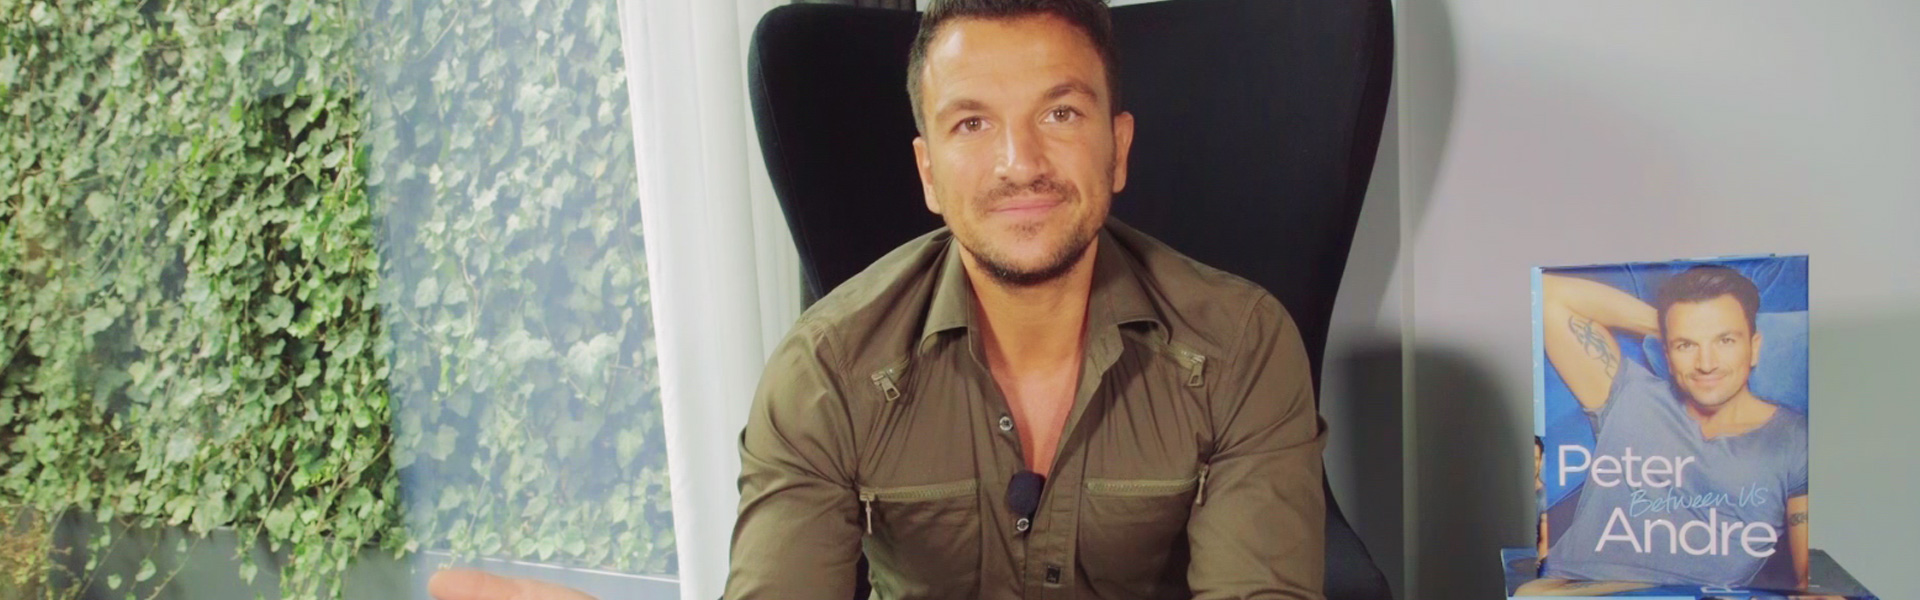 Peter Andre Reads an Extract from Between Us